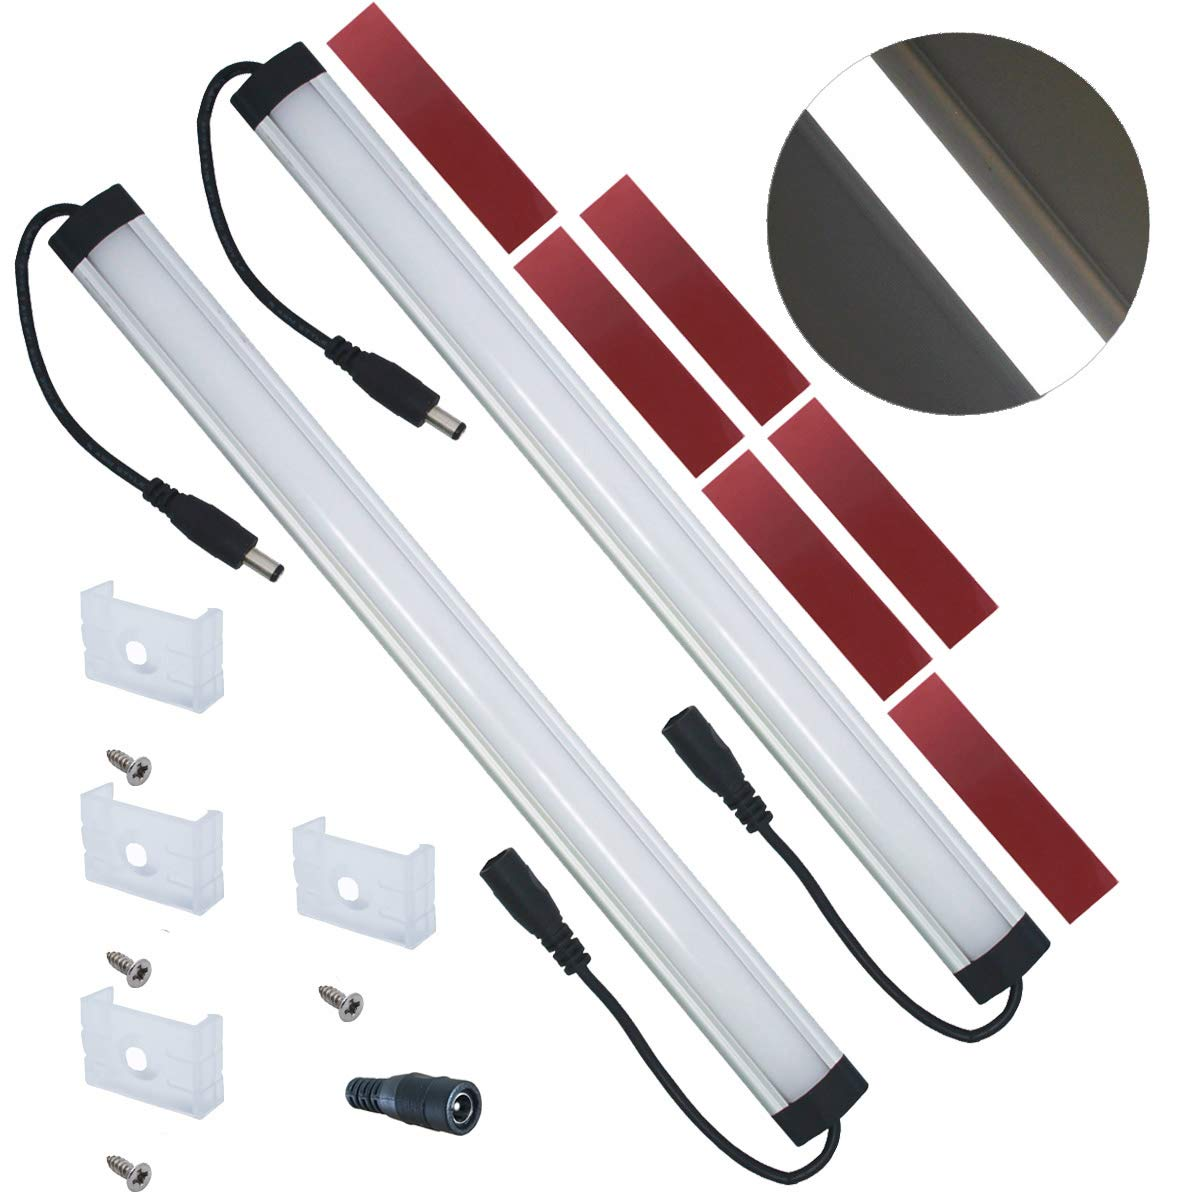 Self-adhesive Pads 5000K Daylight White 2-Pack-5000K Compatible with Litever LL-008 Series ONLY- with Mounting Clips Litever Extra Under Cabinet Lighting Bars,12VDC Screws